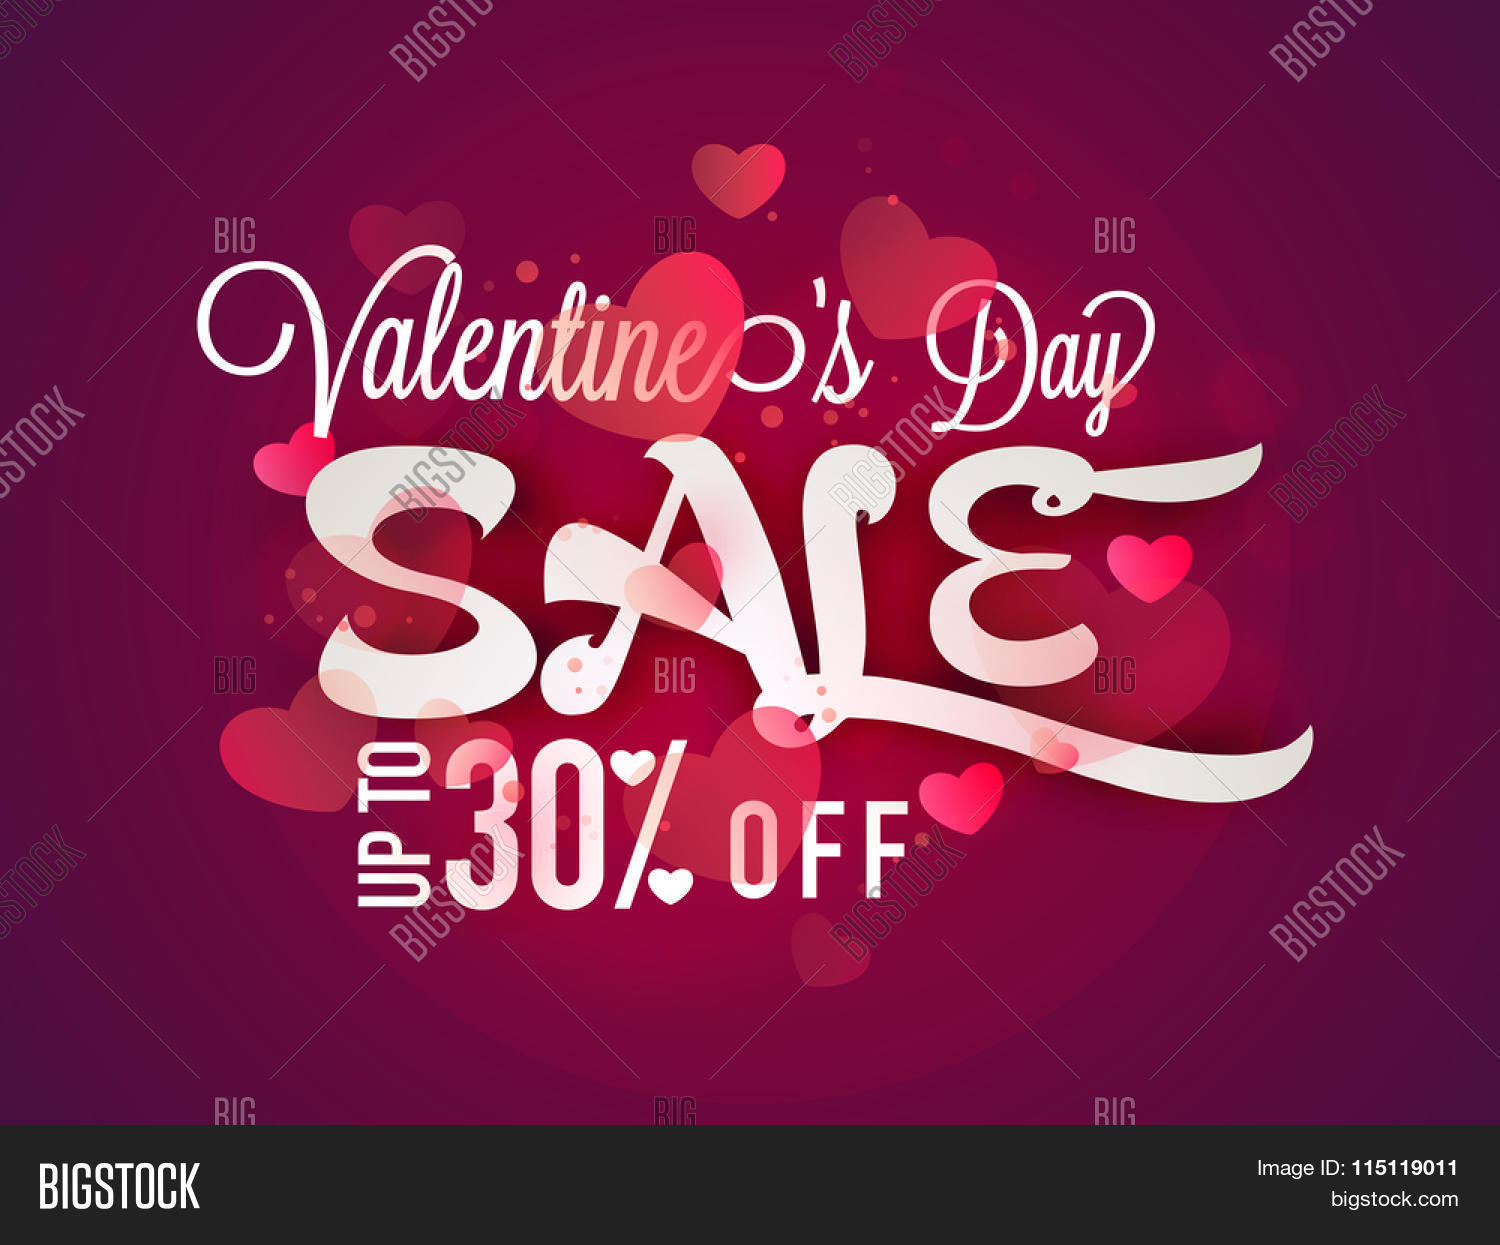 glossy pink hearts decorated poster banner or flyer design of glossy pink hearts decorated poster banner or flyer design of 30% discount